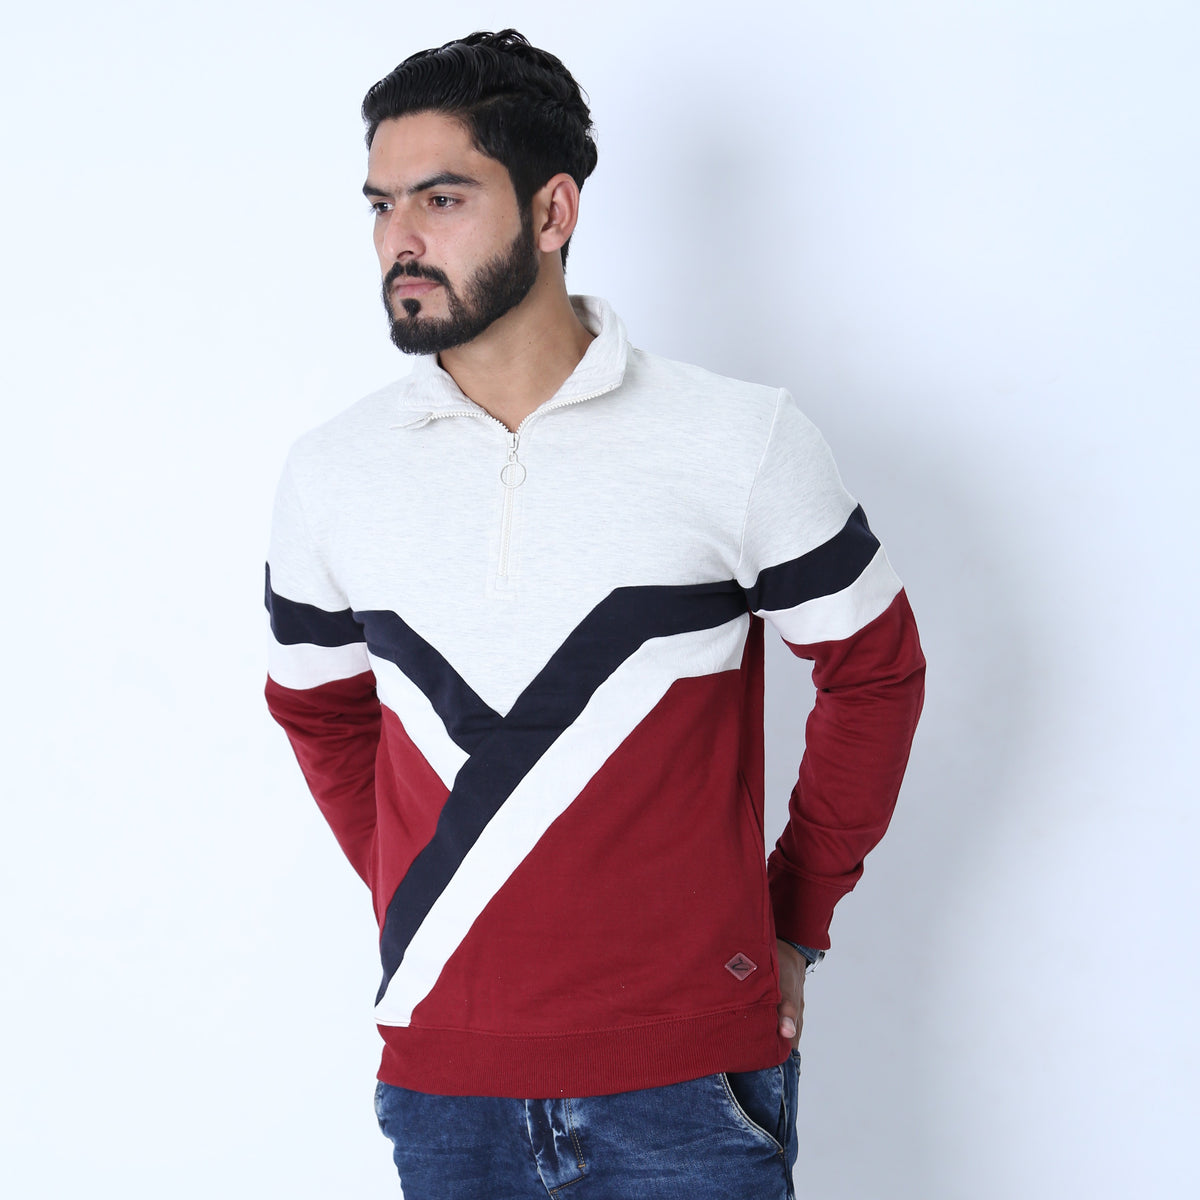 SS Premium Men's 1/4 Zip Up with Retro Stripes